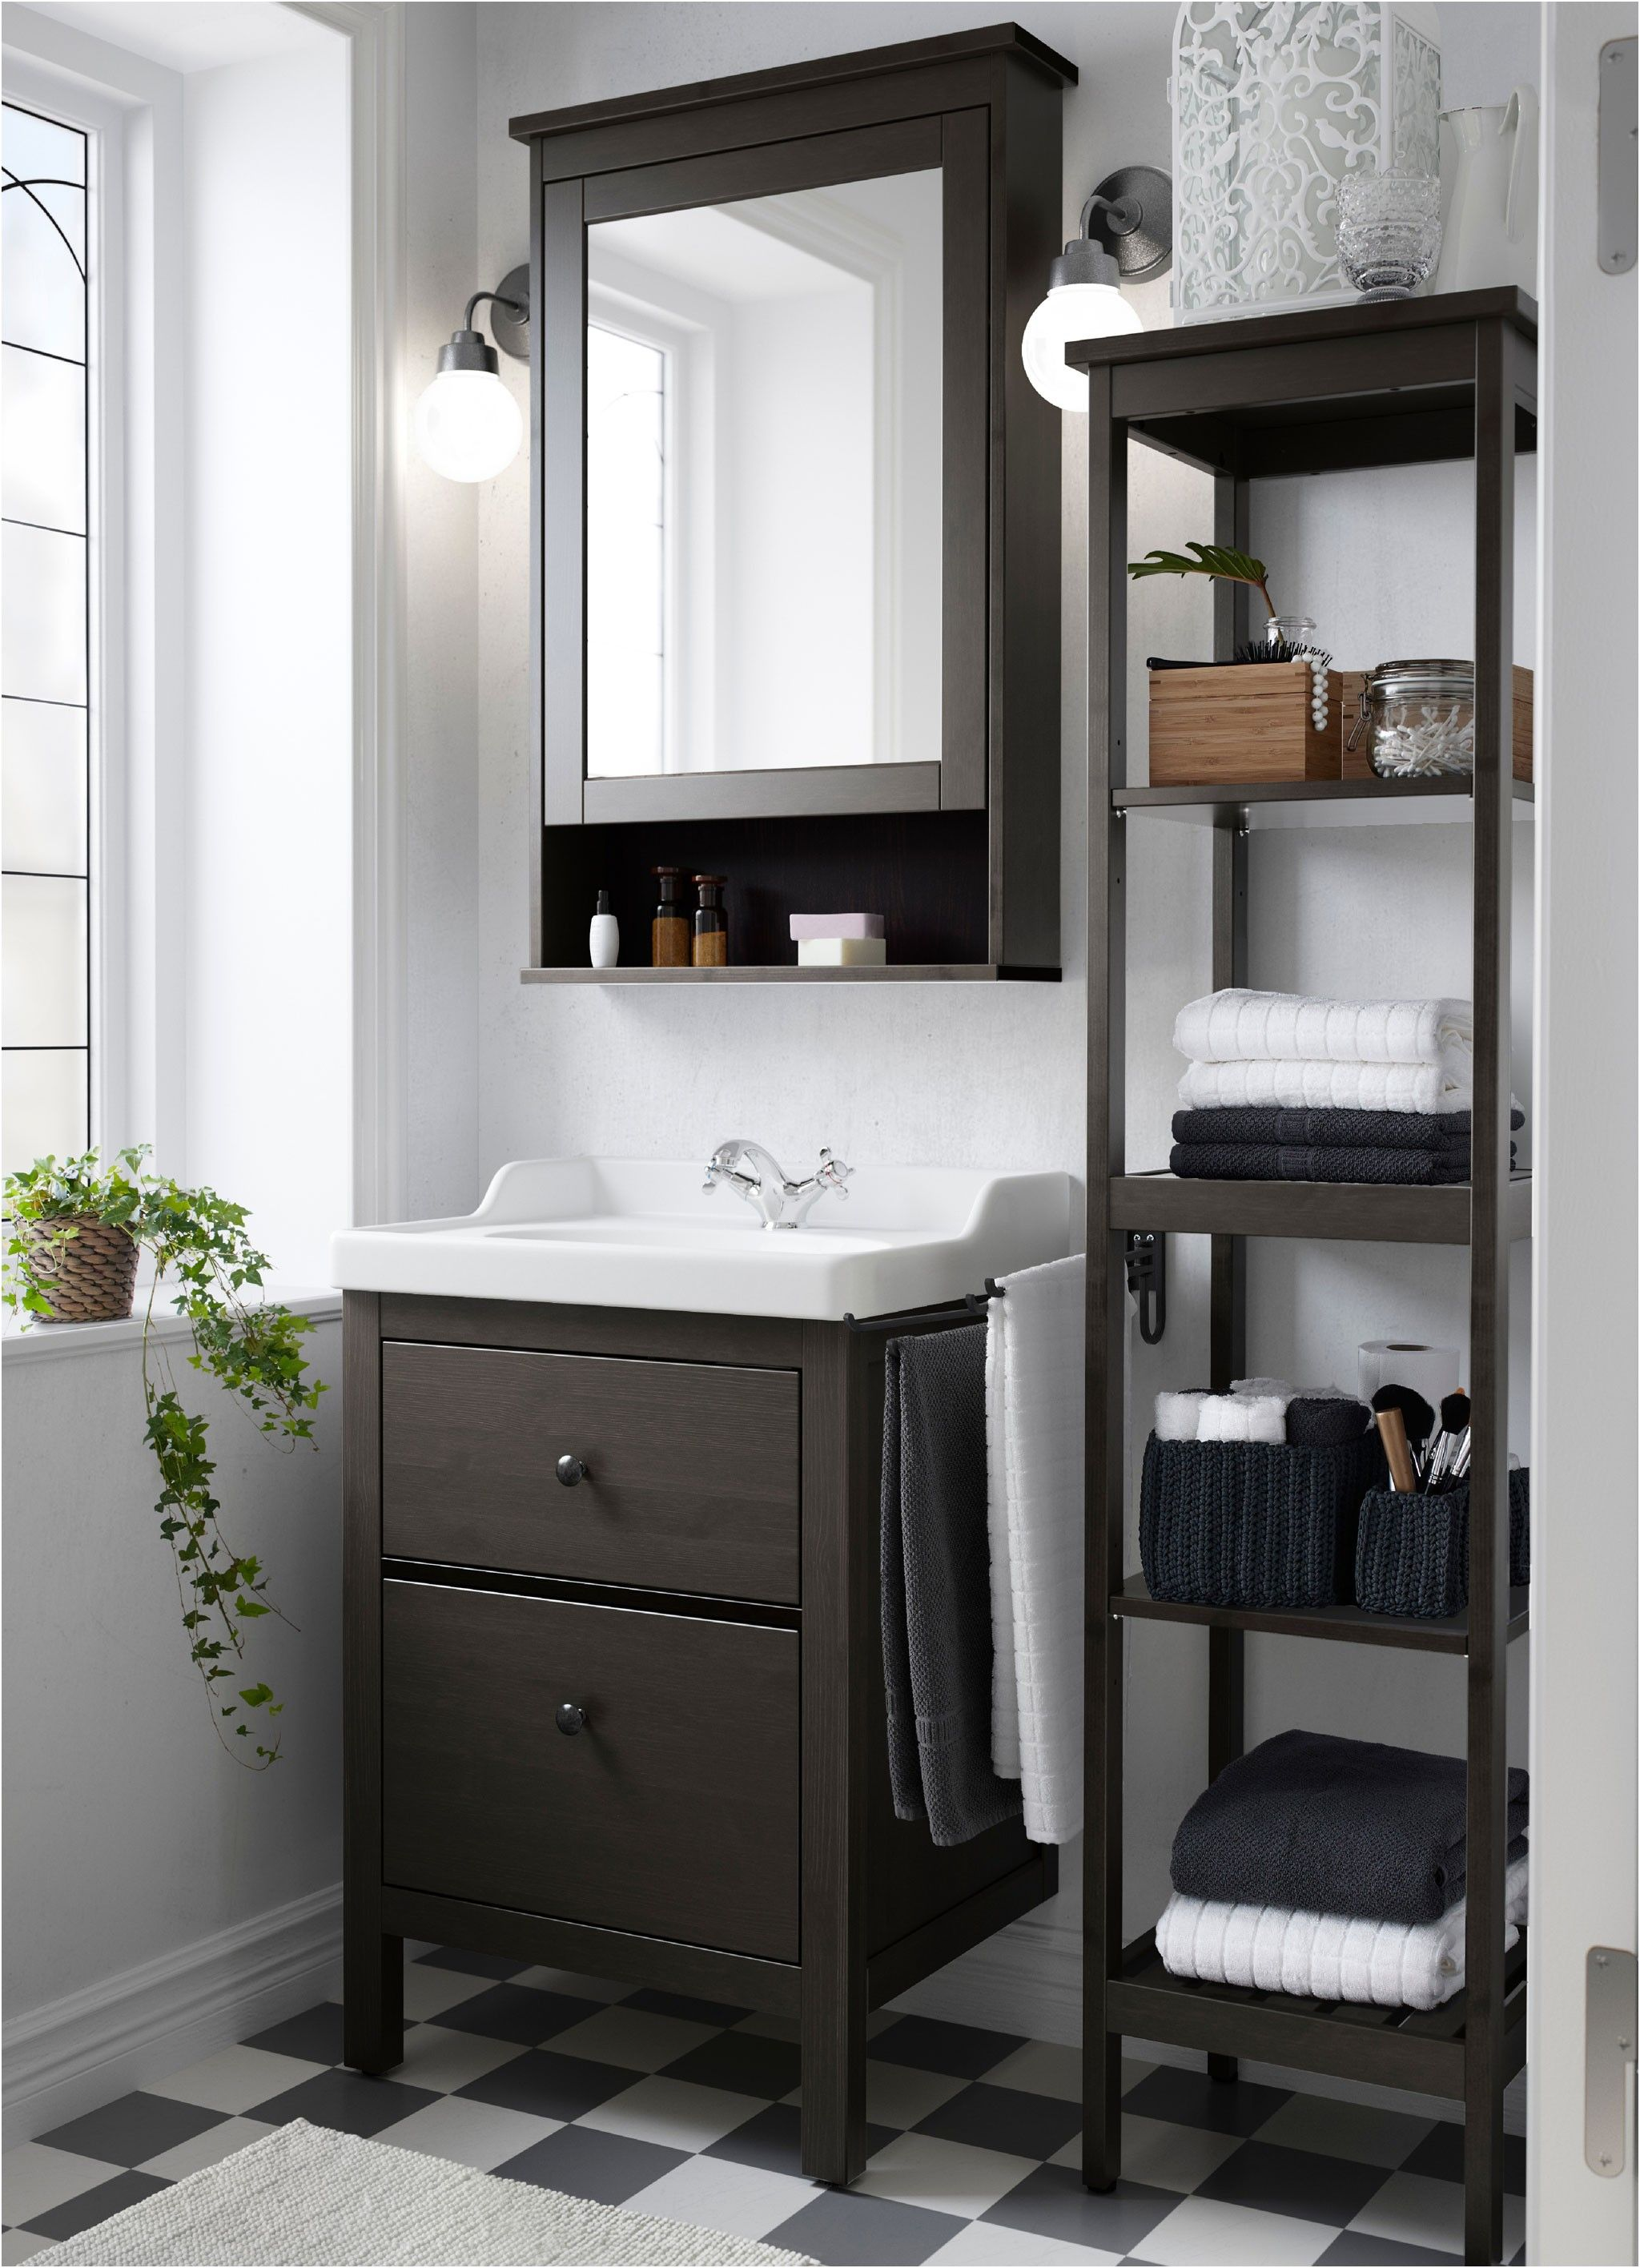 Bathroom Furniture Bathroom Ideas From Ikea Bathroom Cabinets Uk Bathroom Cabinets Designs Bathroom Storage Cabinet Small Bathroom Storage